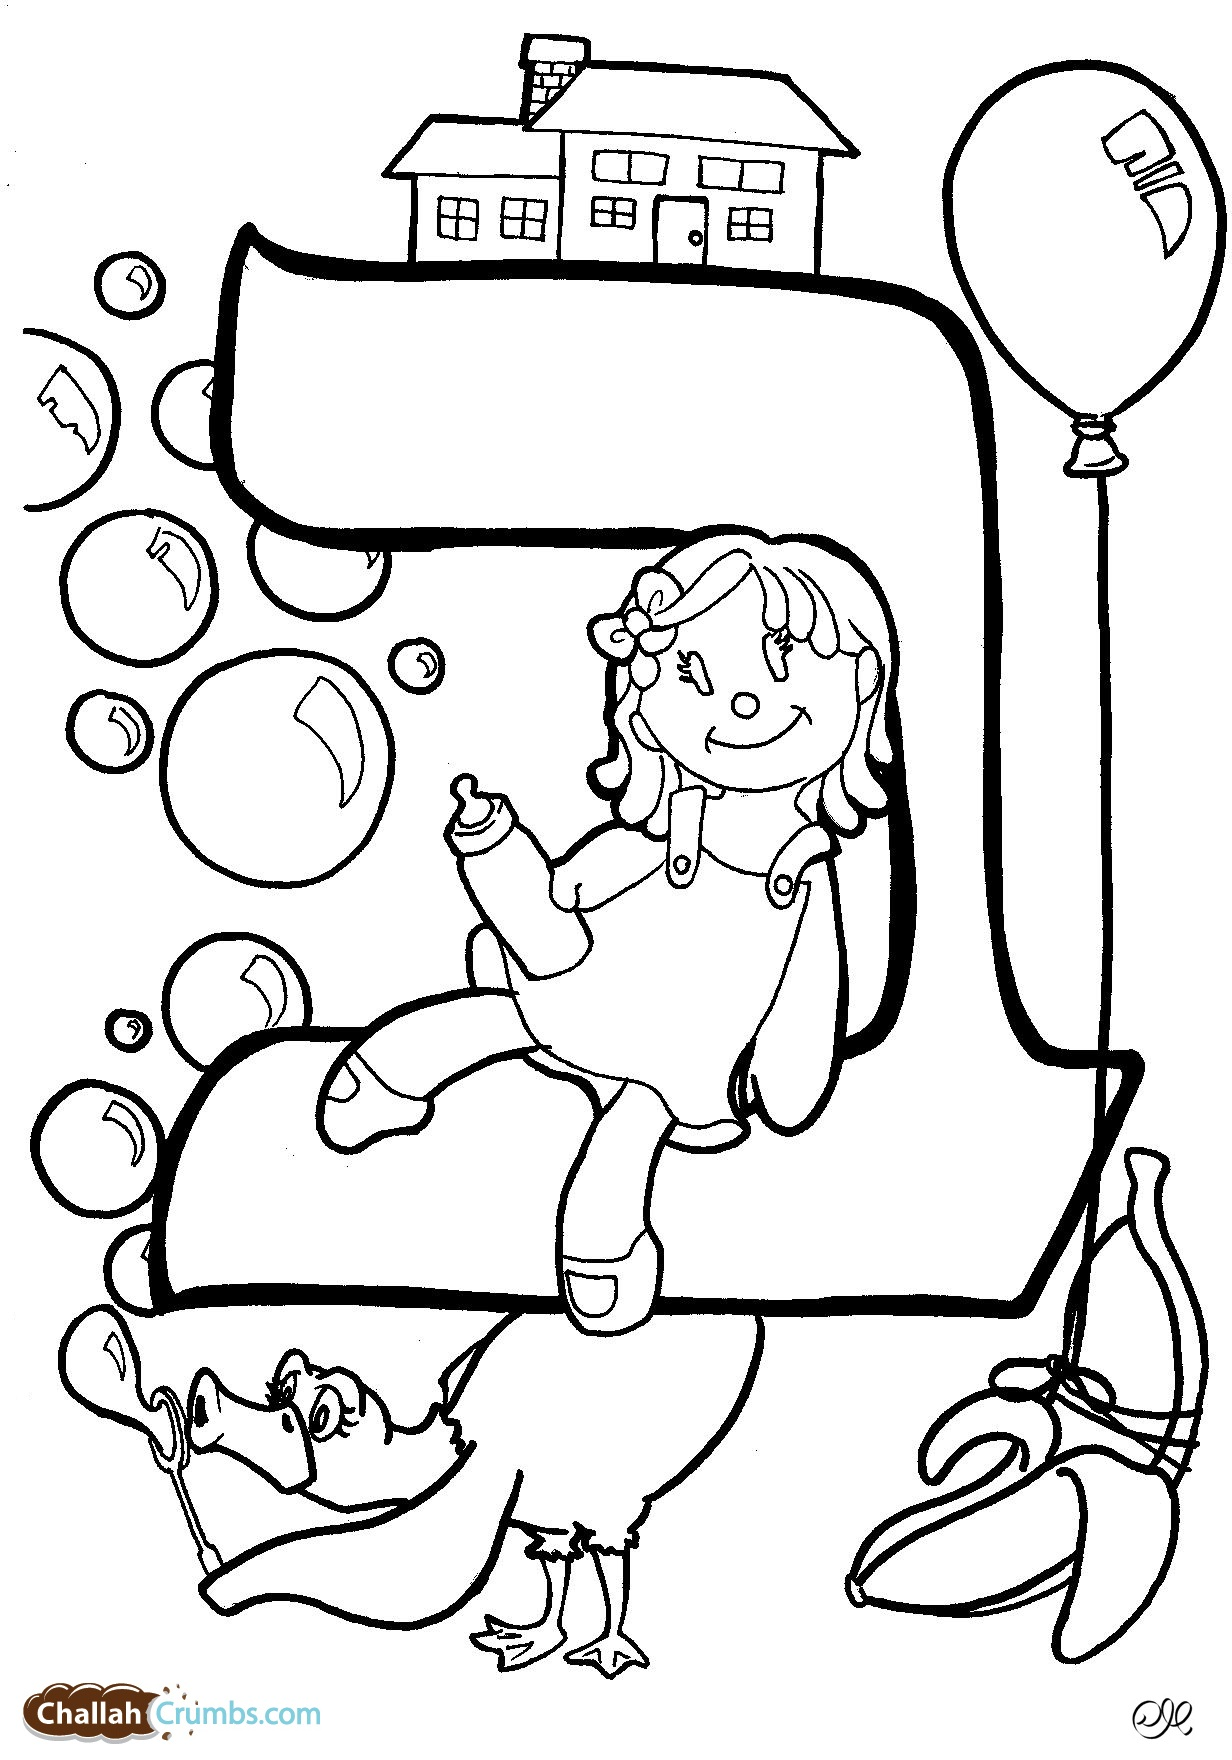 1232x1760 Jewish Coloring Pages Linefa Me New